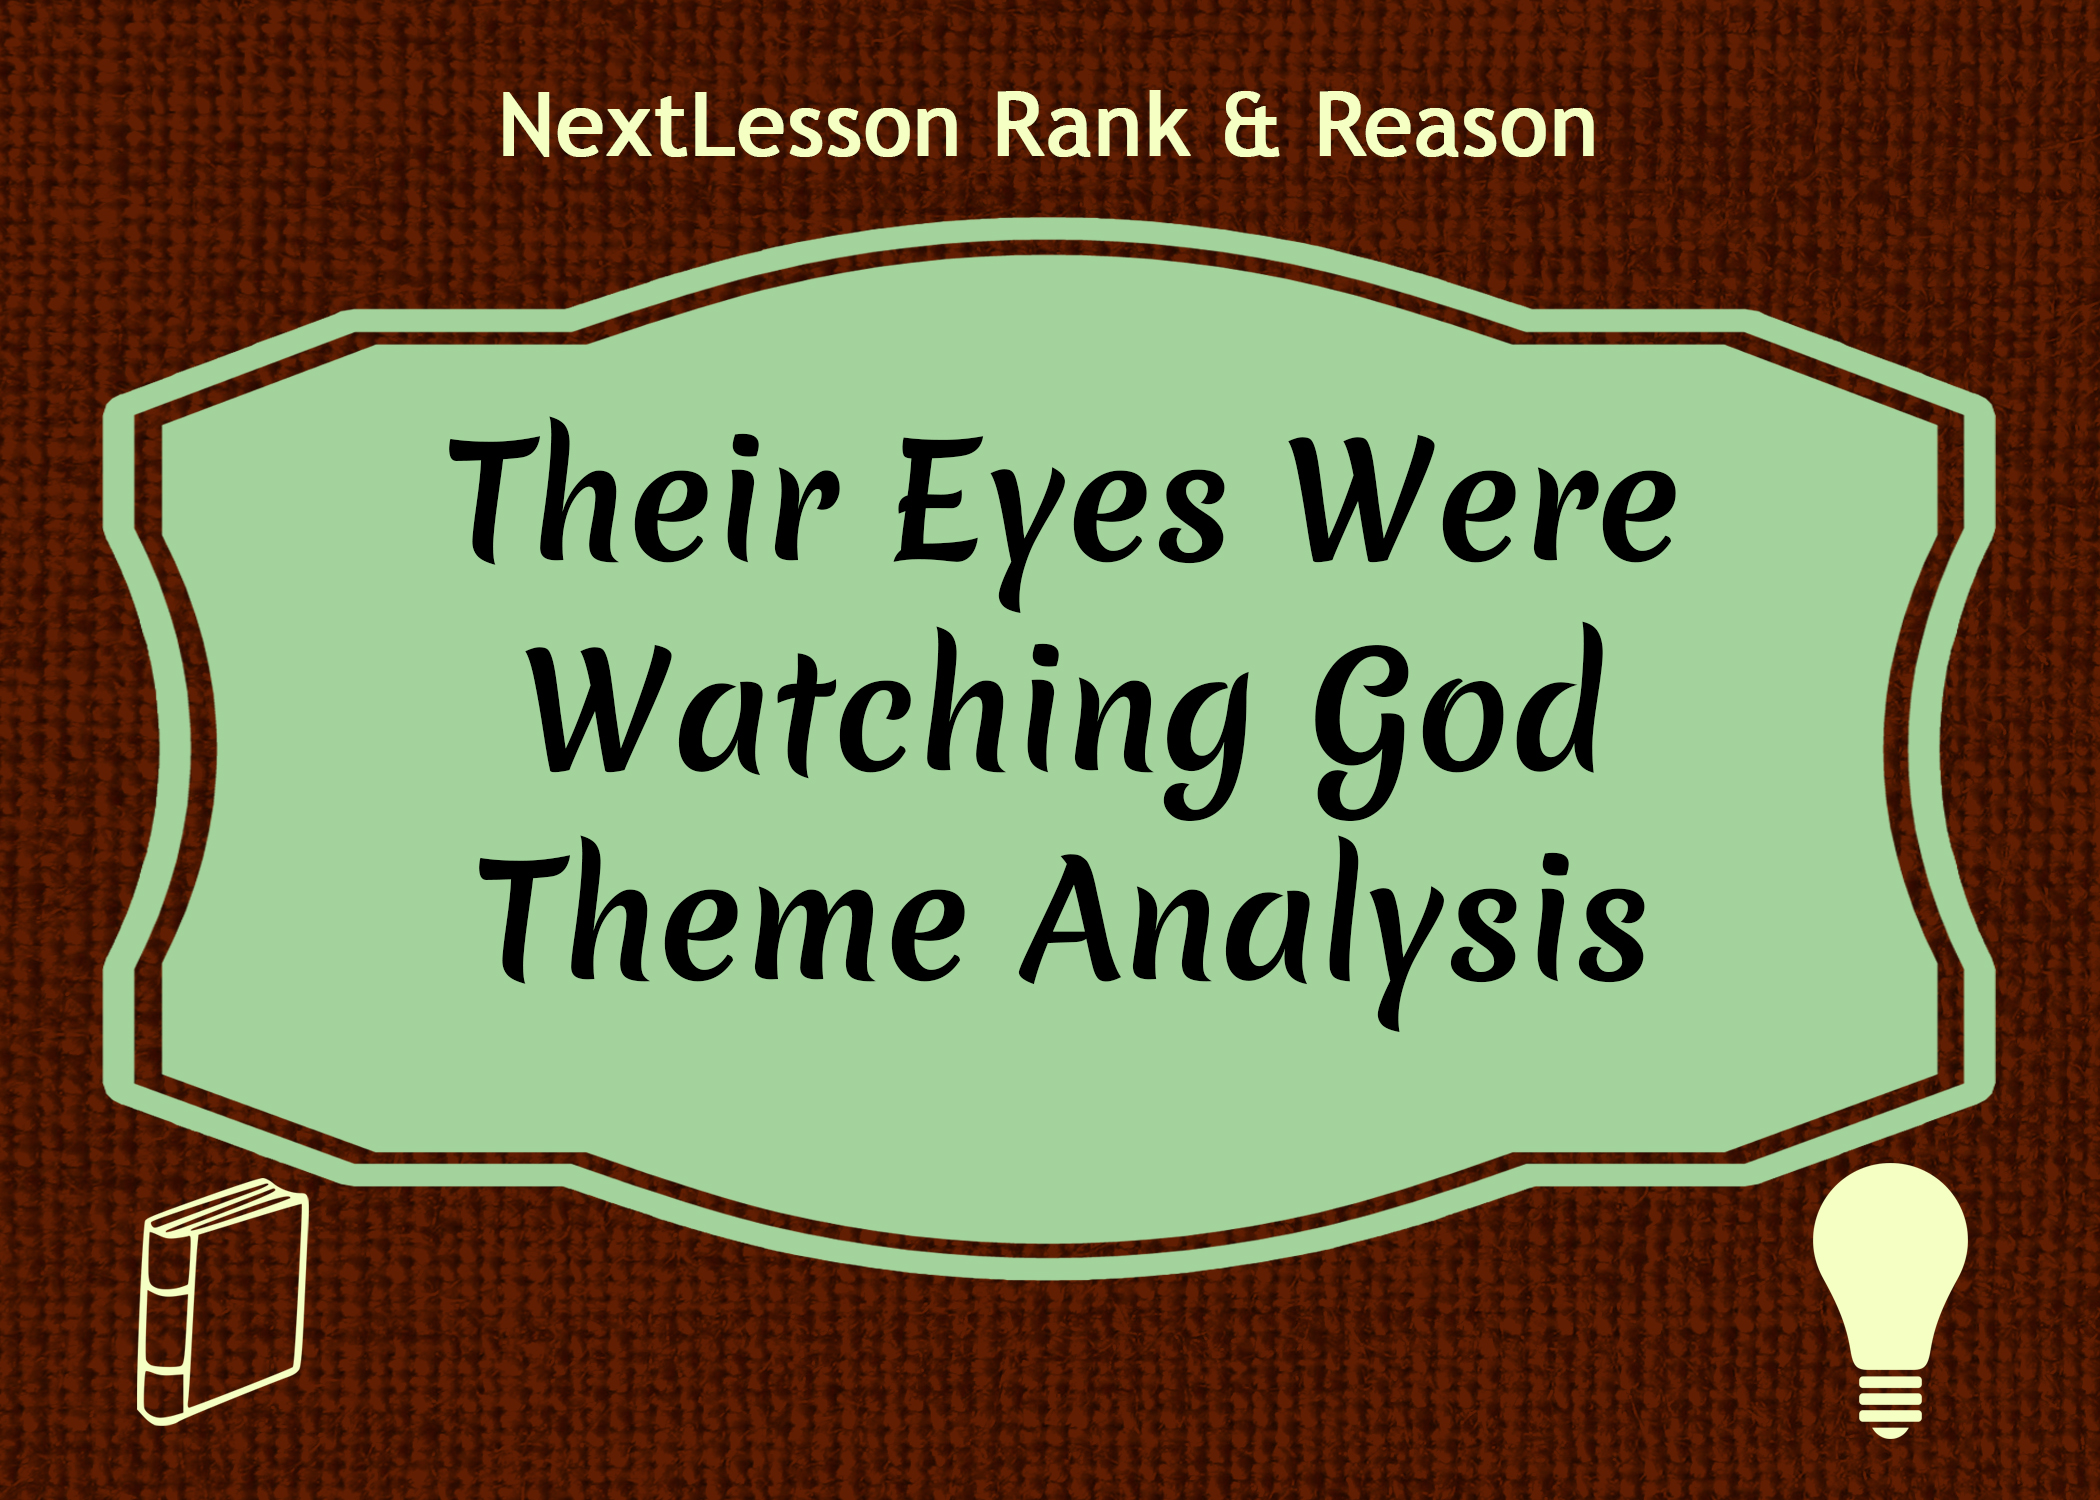 their eyes were watching god essay prompt Essays their eyes were watching god analysis hurston refutes the trite belief that women are obligated to repress their aspirations and sexuality their eyes were watching god serves as a testament to the ability of women to achieve life experience.